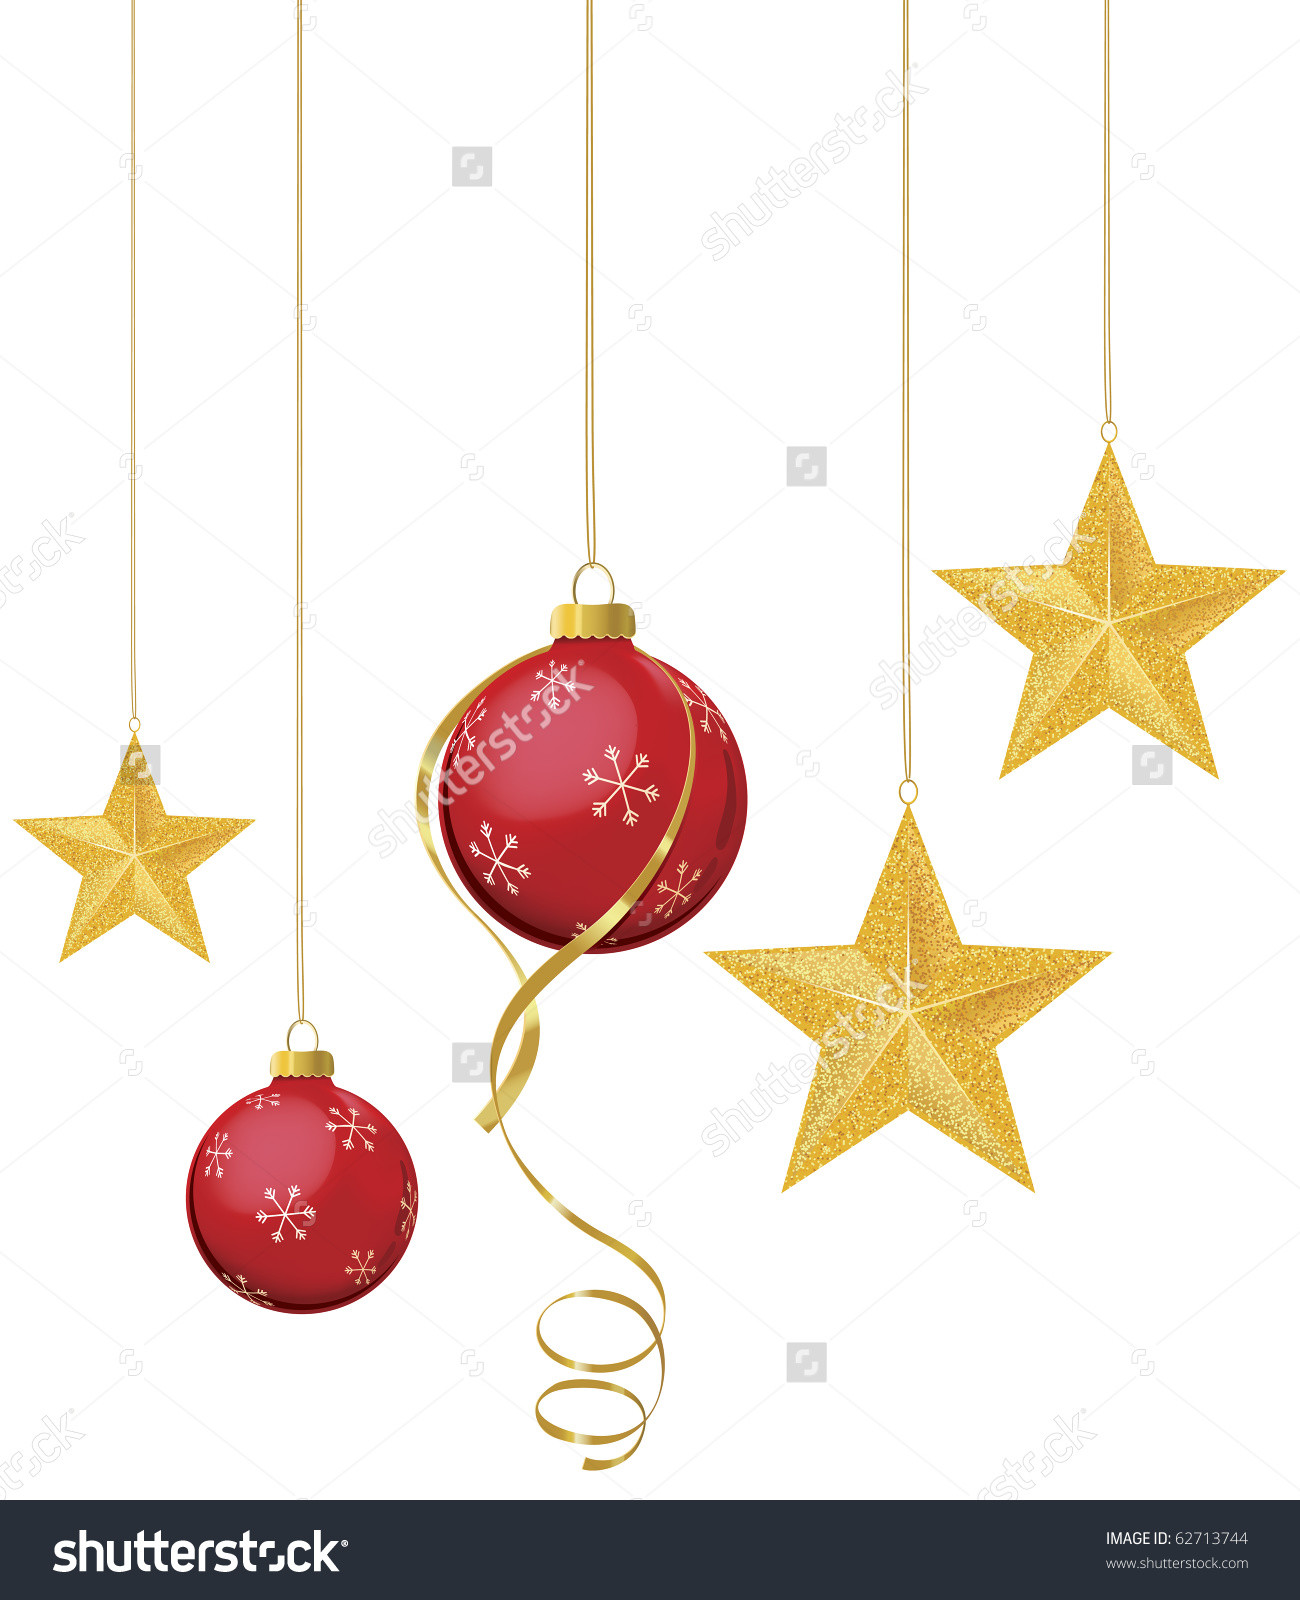 Hanging Christmas ornaments Fresh Hanging Red Christmas ornaments – Happy Holidays Of Luxury 45 Pictures Hanging Christmas ornaments